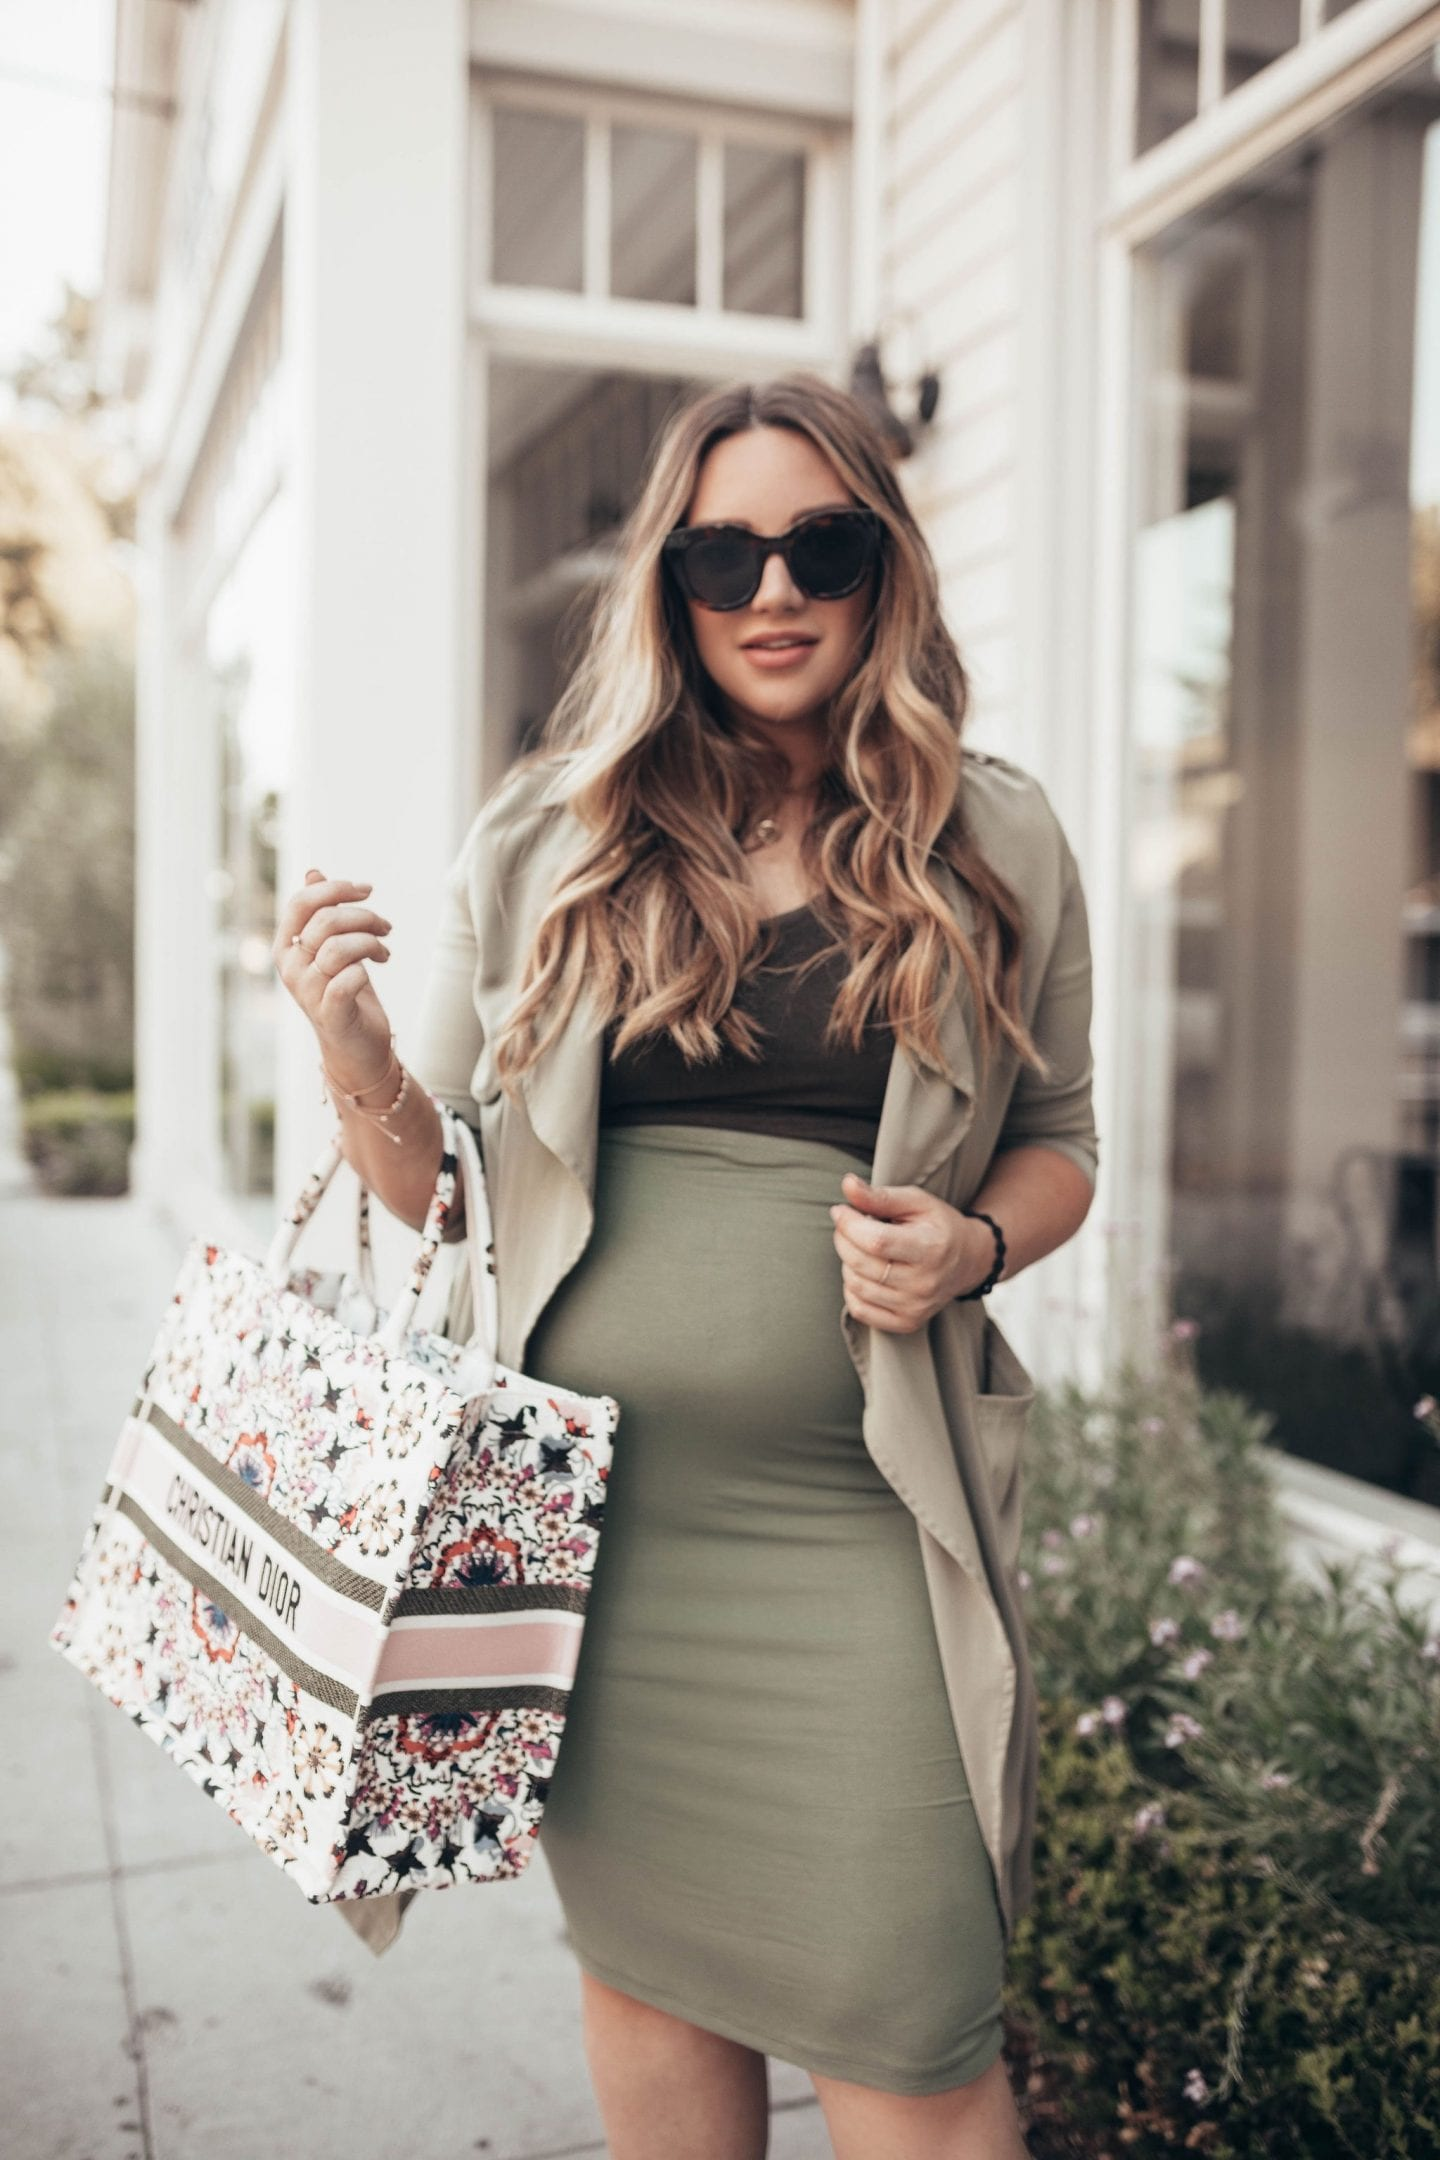 Maternity Style for Each Trimester by popular California fashion blog, Just Add Glam: image of a woman wearing a olive green high waist skirt, black shirt, and green sweater jacket.